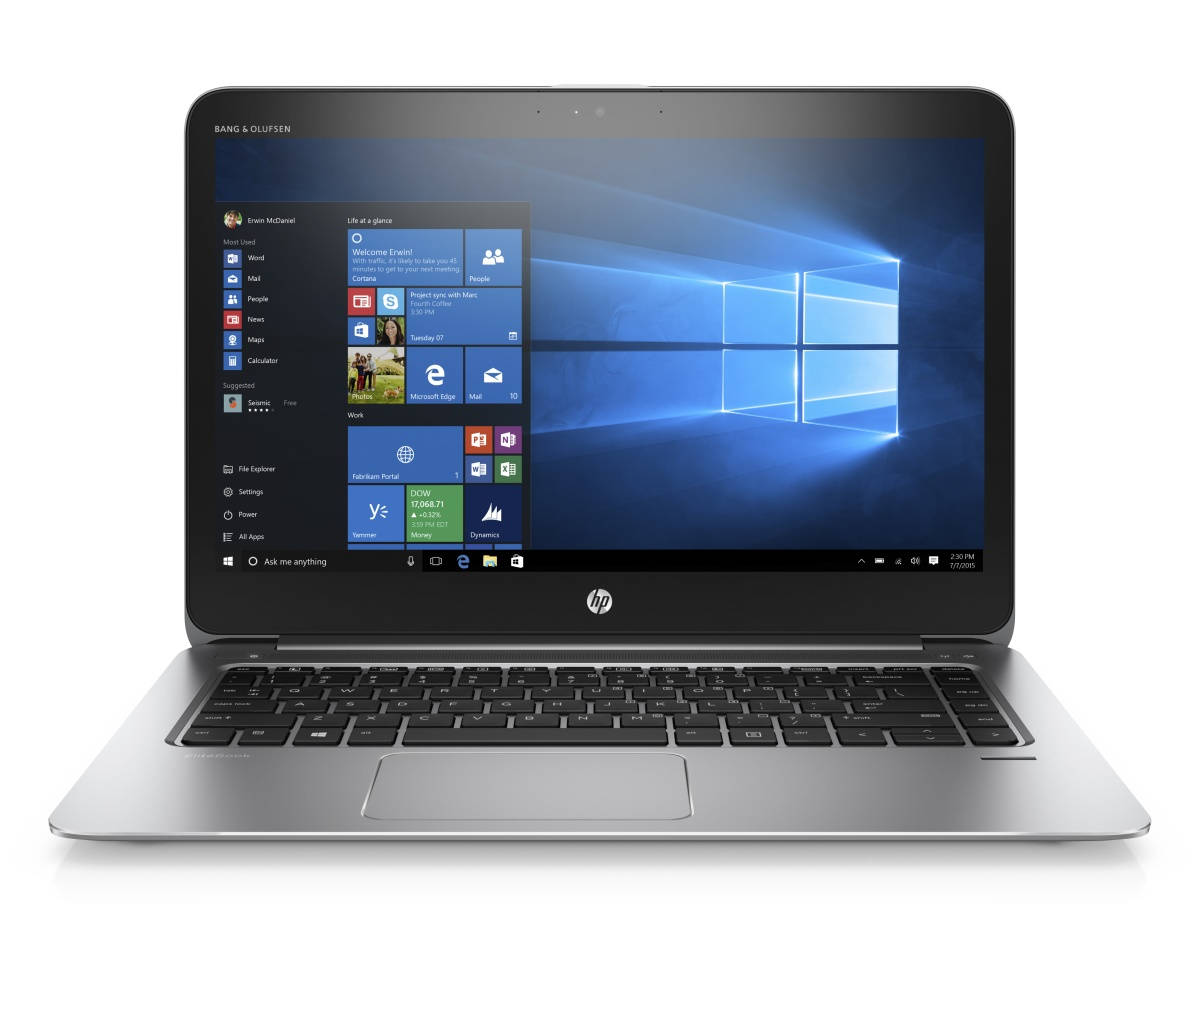 HP EliteBook Folio 1040 G3 i5-6200U /8 GB/256GB SSD/14'' FHD/backlit keyb, NFC, RJ45-VGA adapt / Win 10 Pro + Win7 Pro